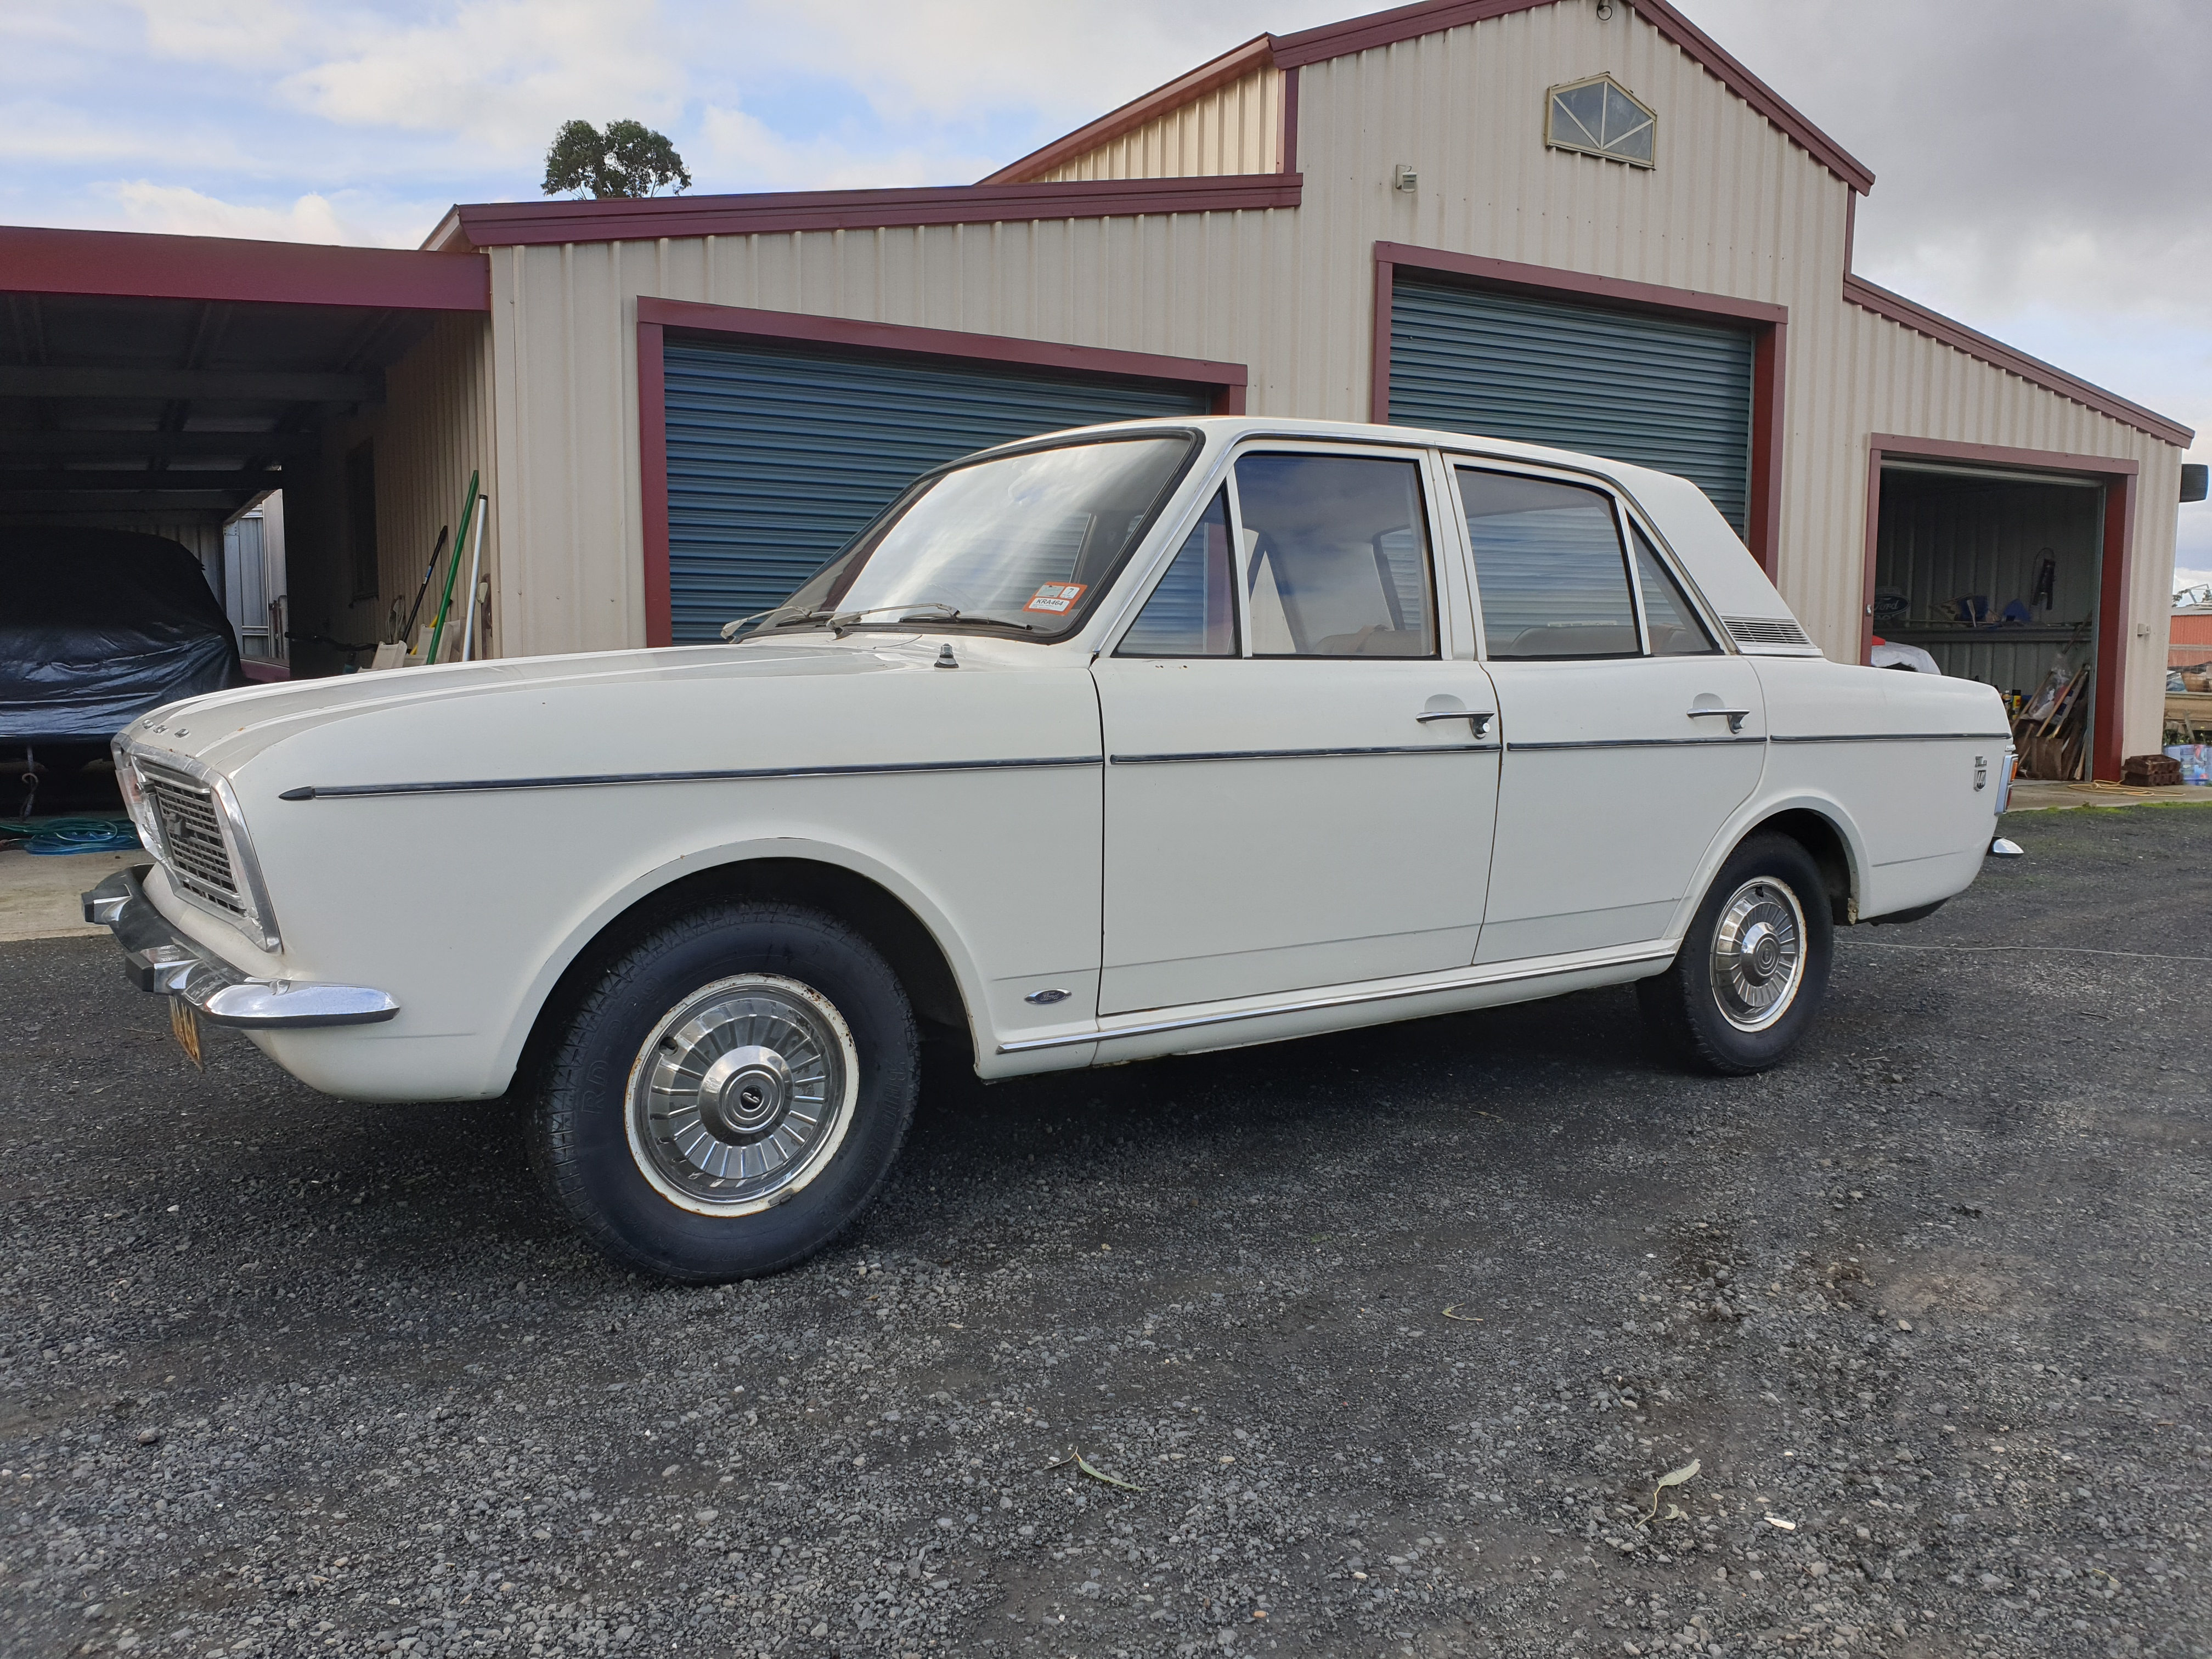 Ford Cortina Cars for sale in Australia - JUST CARS